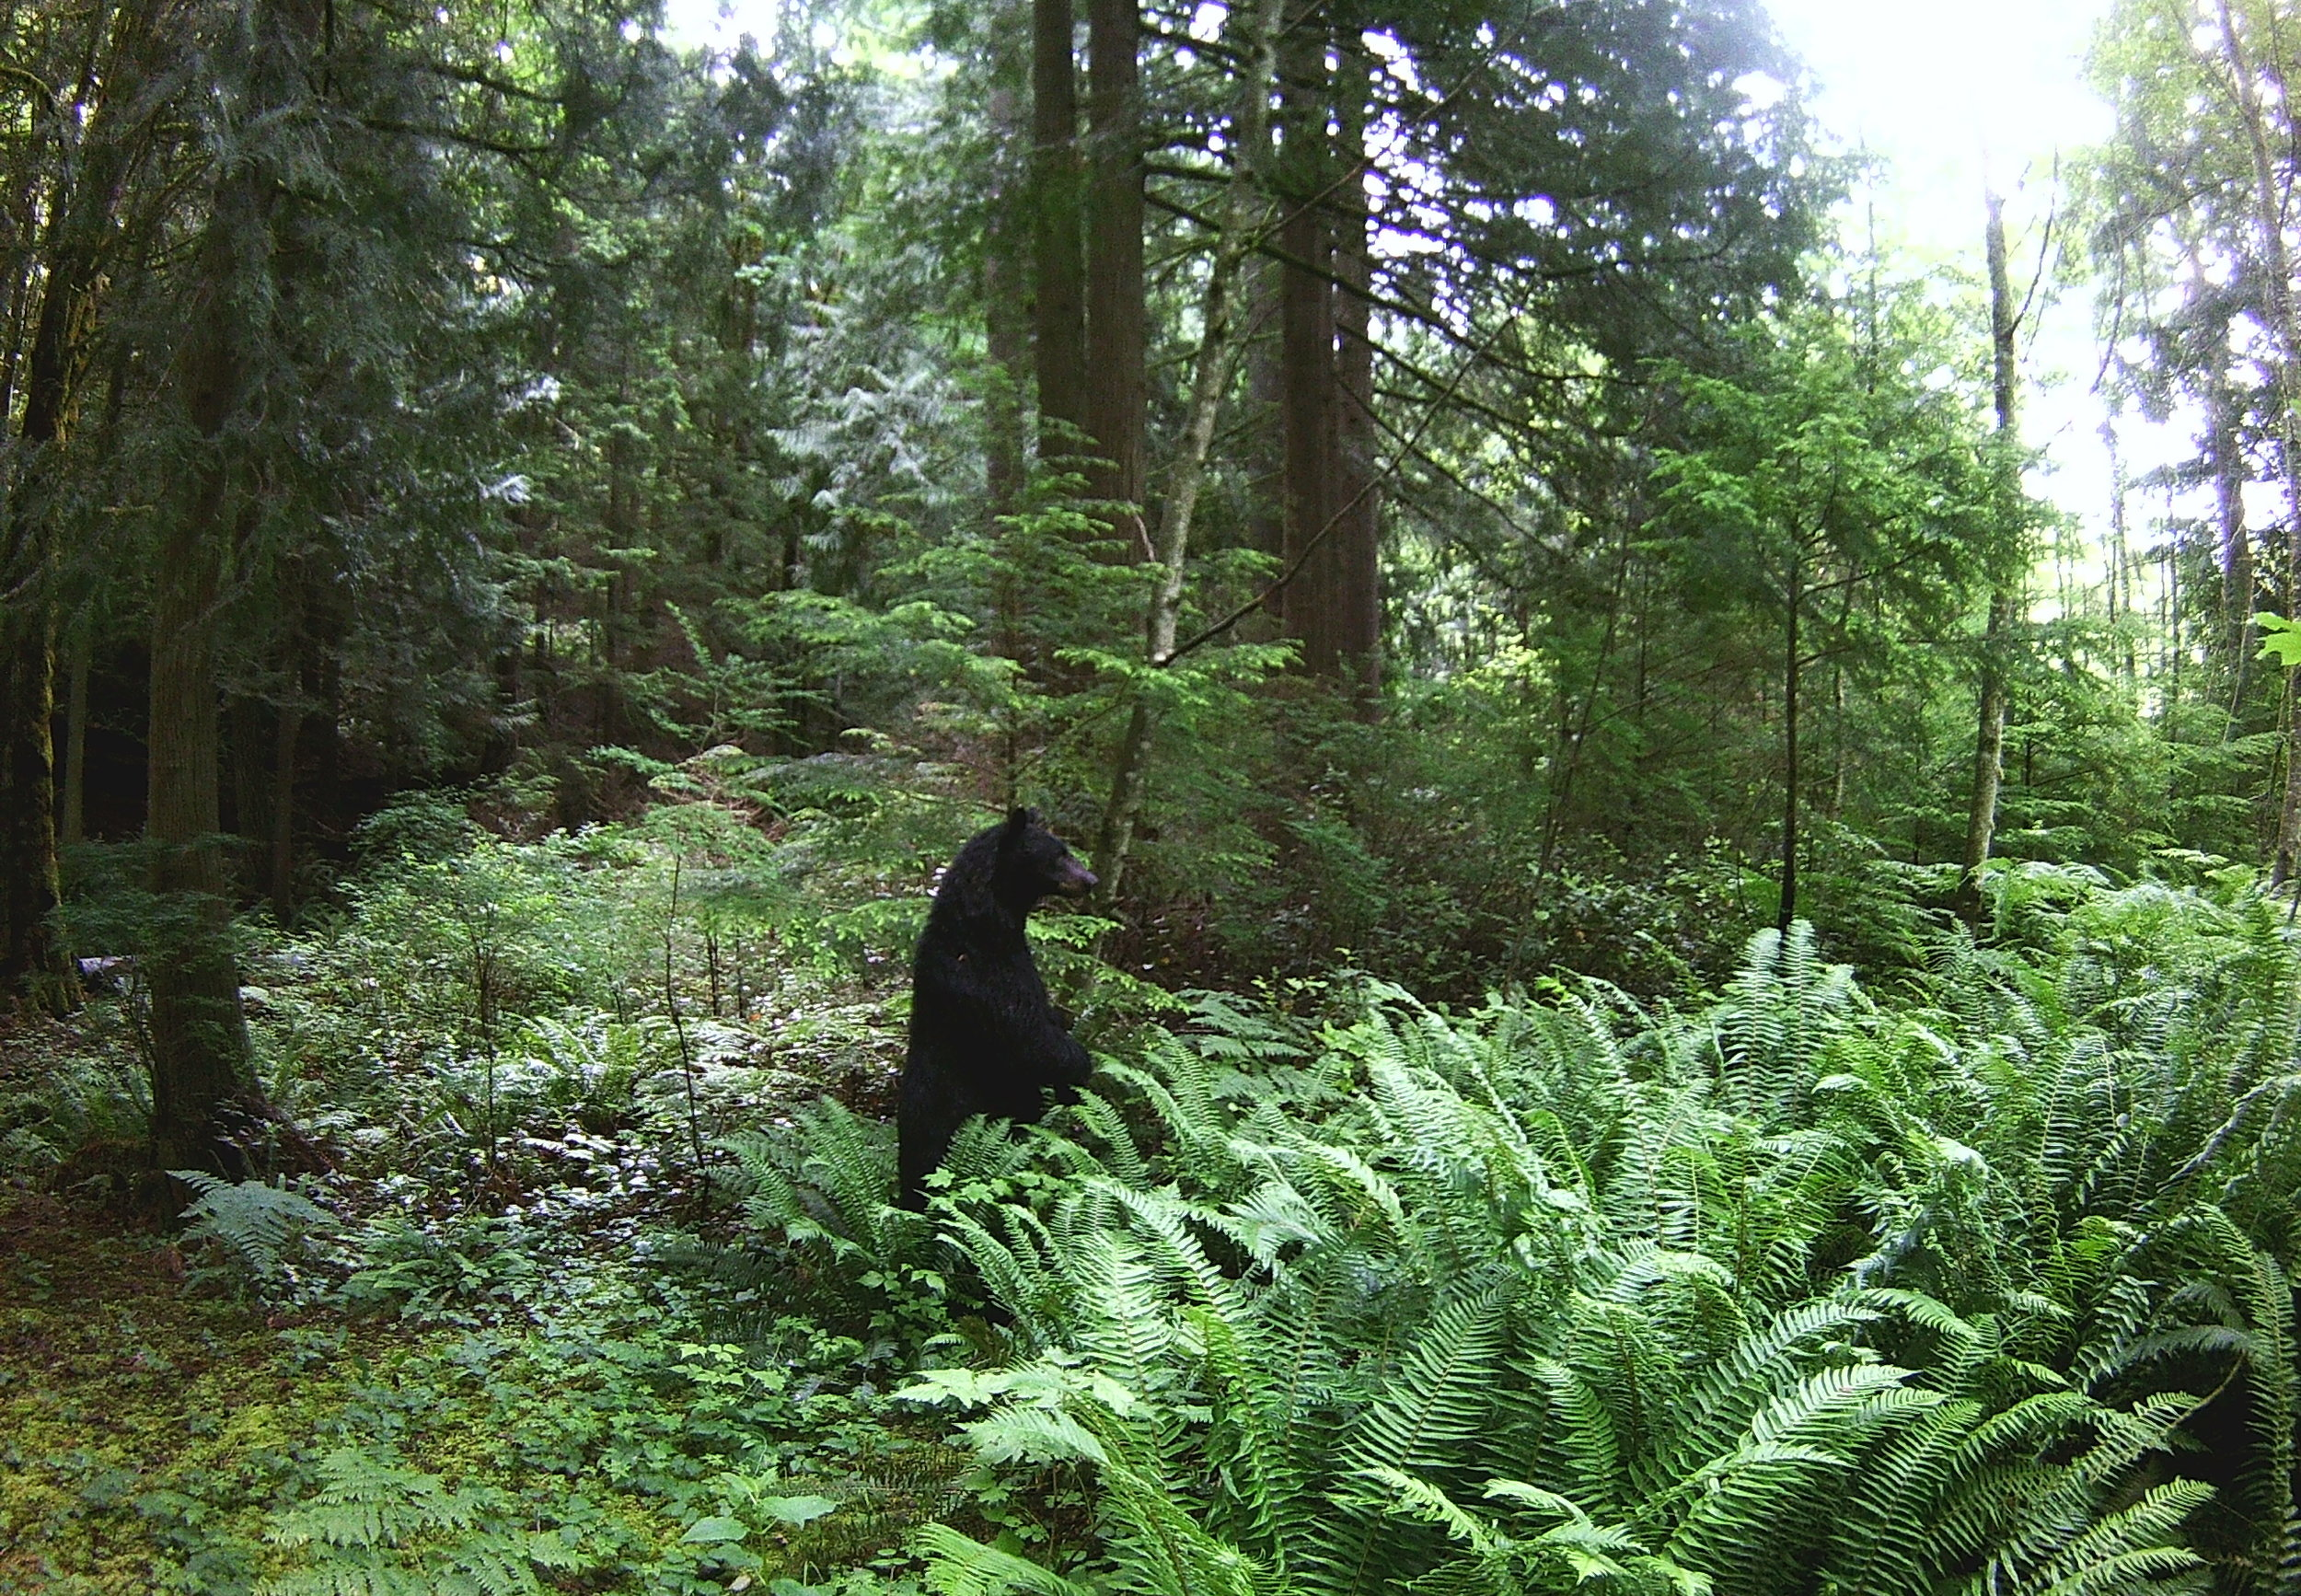 Black Bear, wildlife camera